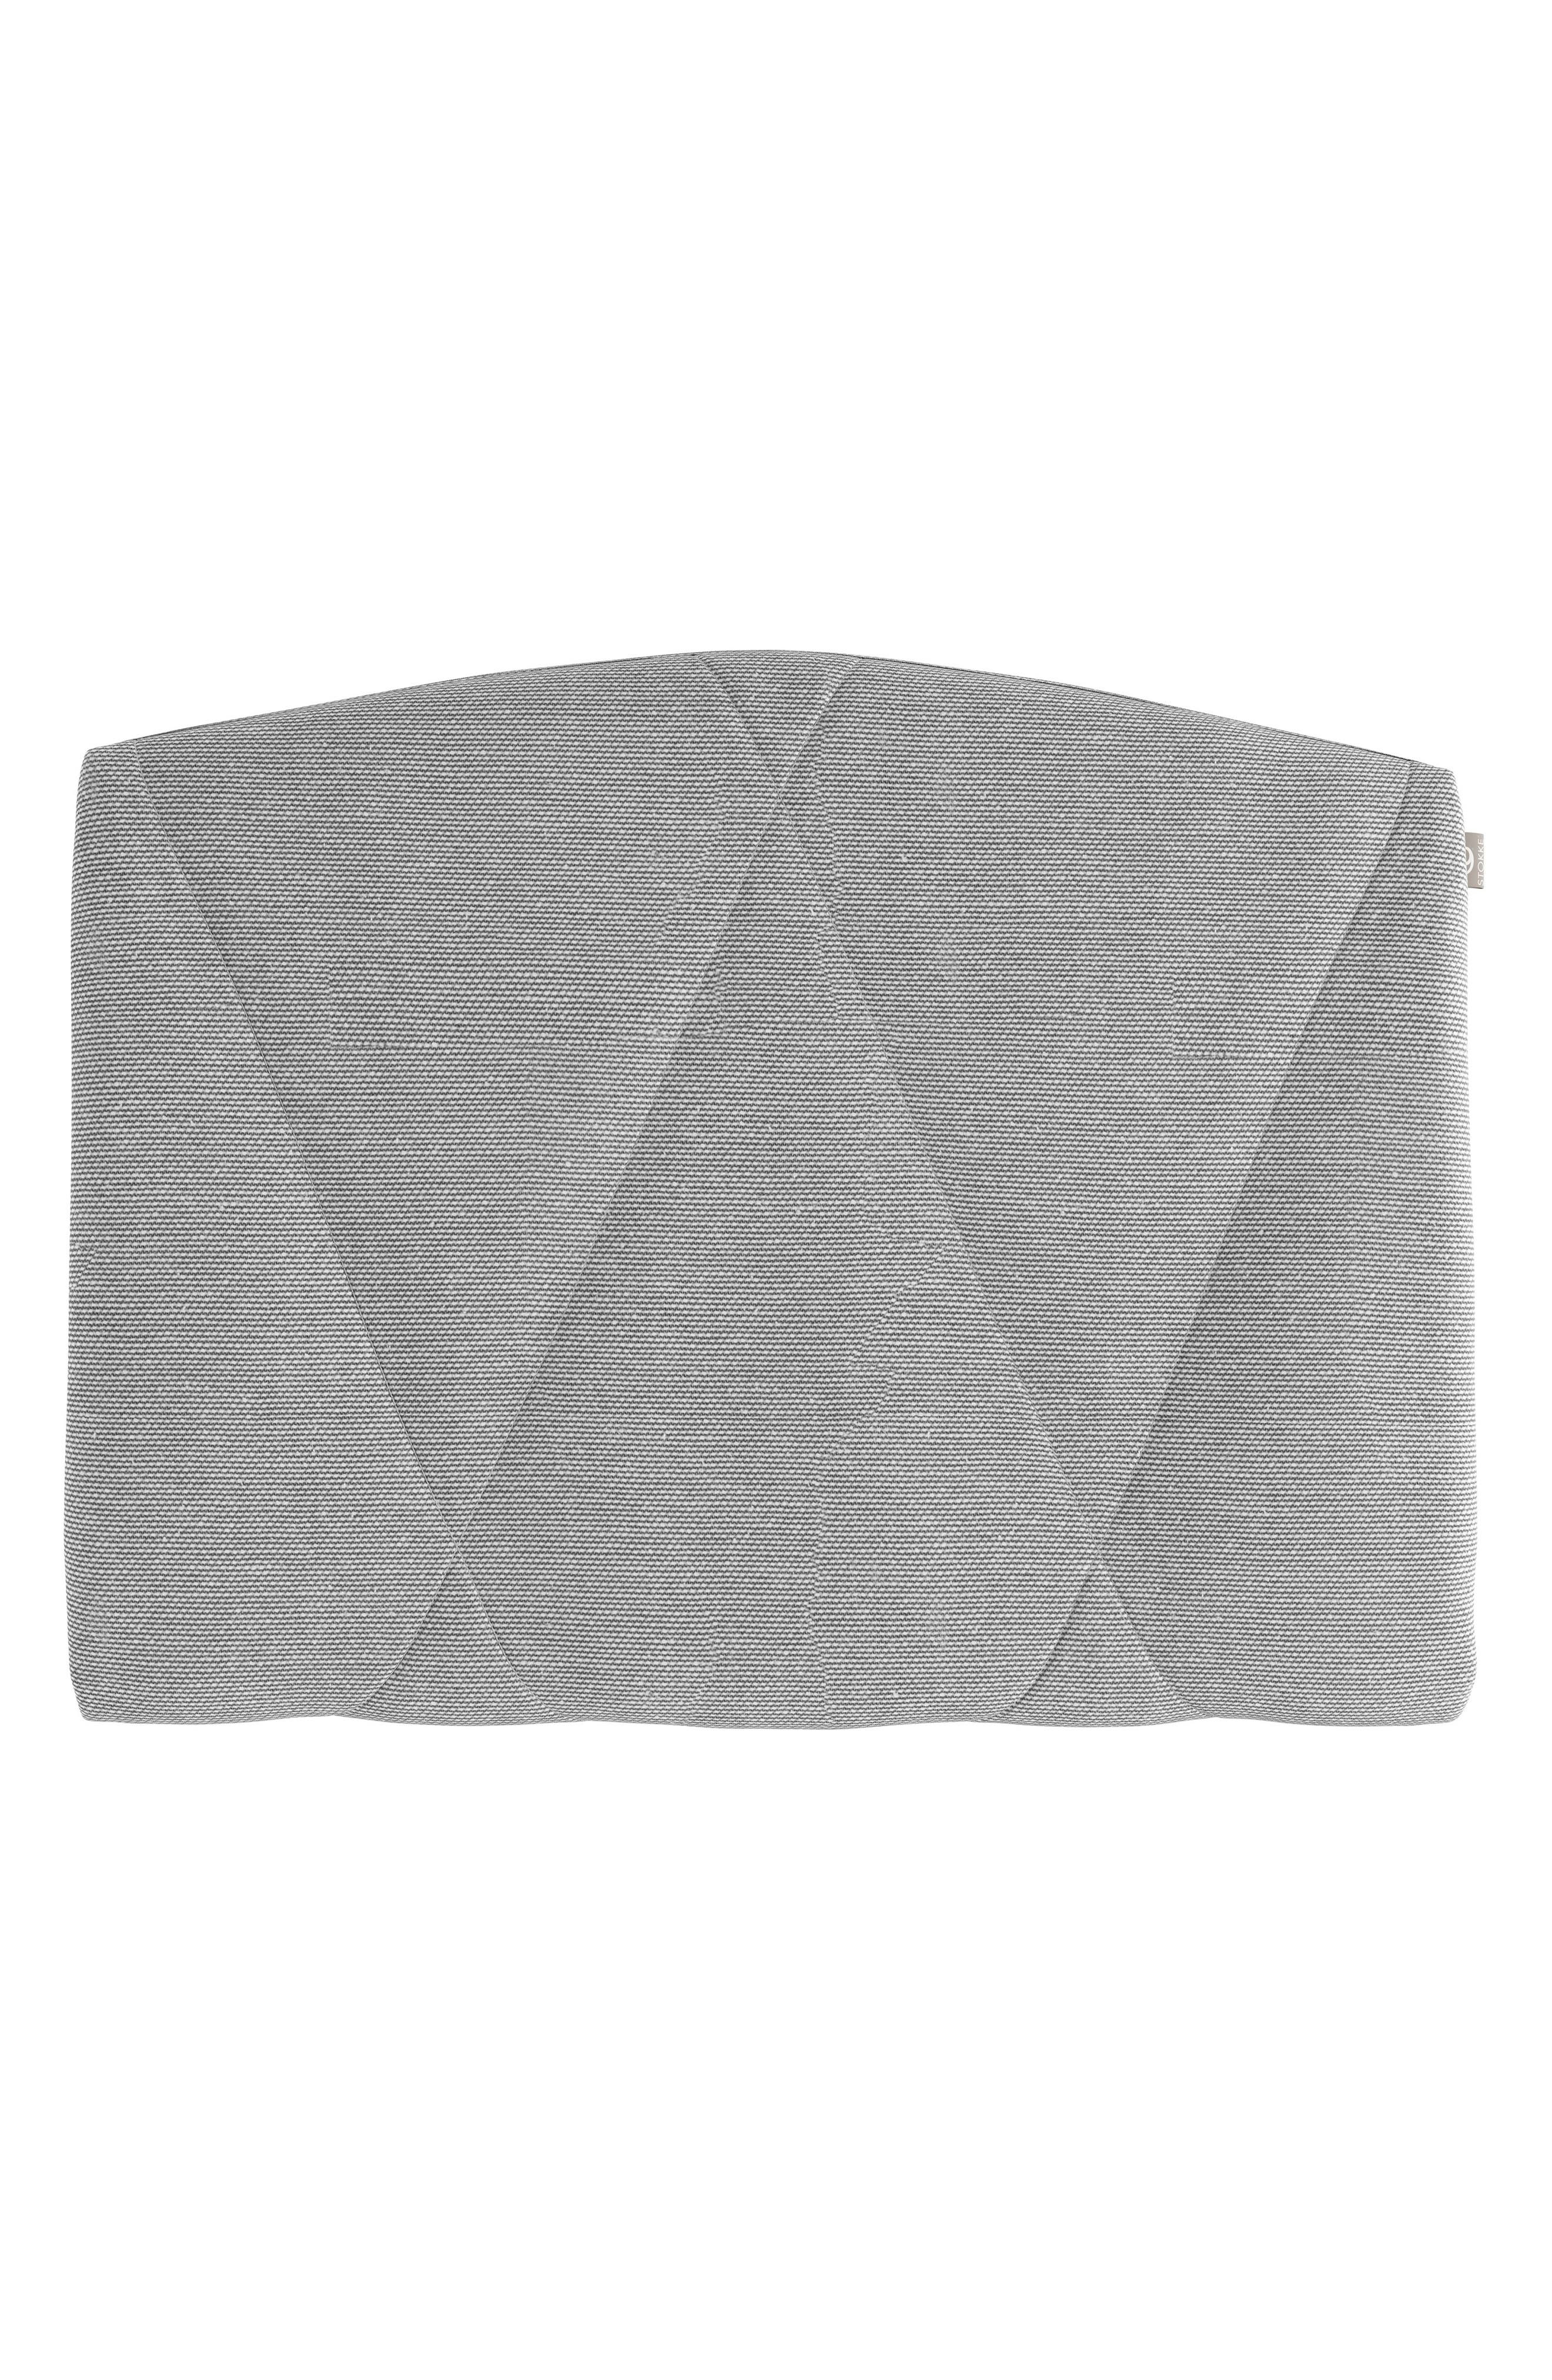 Tripp Trapp<sup>®</sup> Adult Cushion,                             Main thumbnail 1, color,                             SLATE TWILL